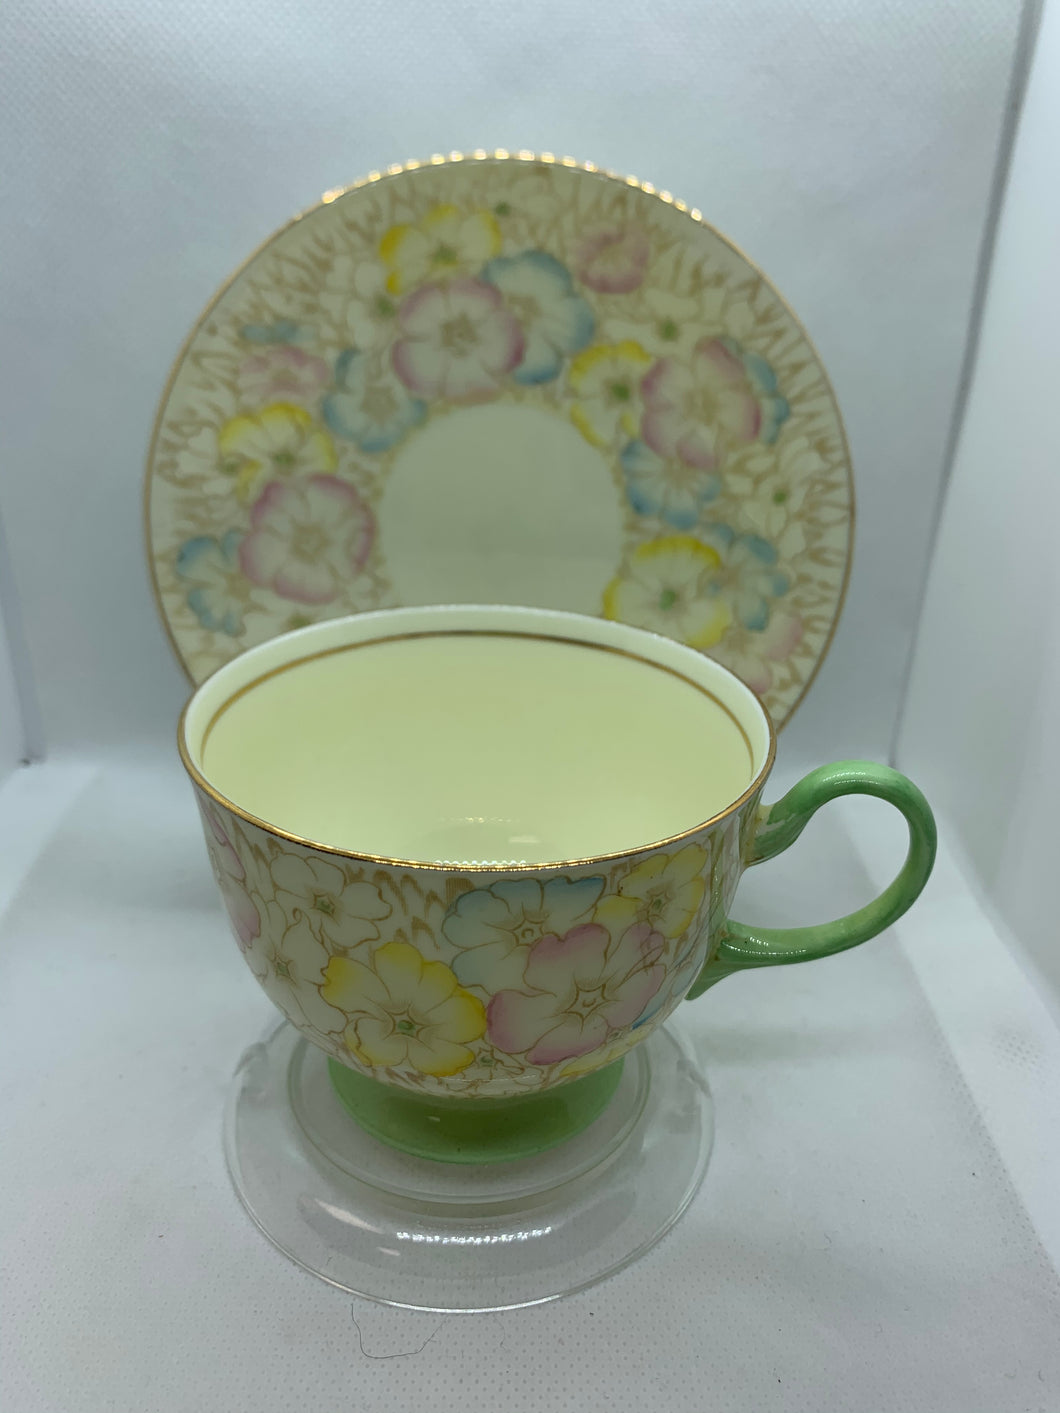 Collingwood. England. Cup and Saucer. Cream with mint green and mixed pastel floral